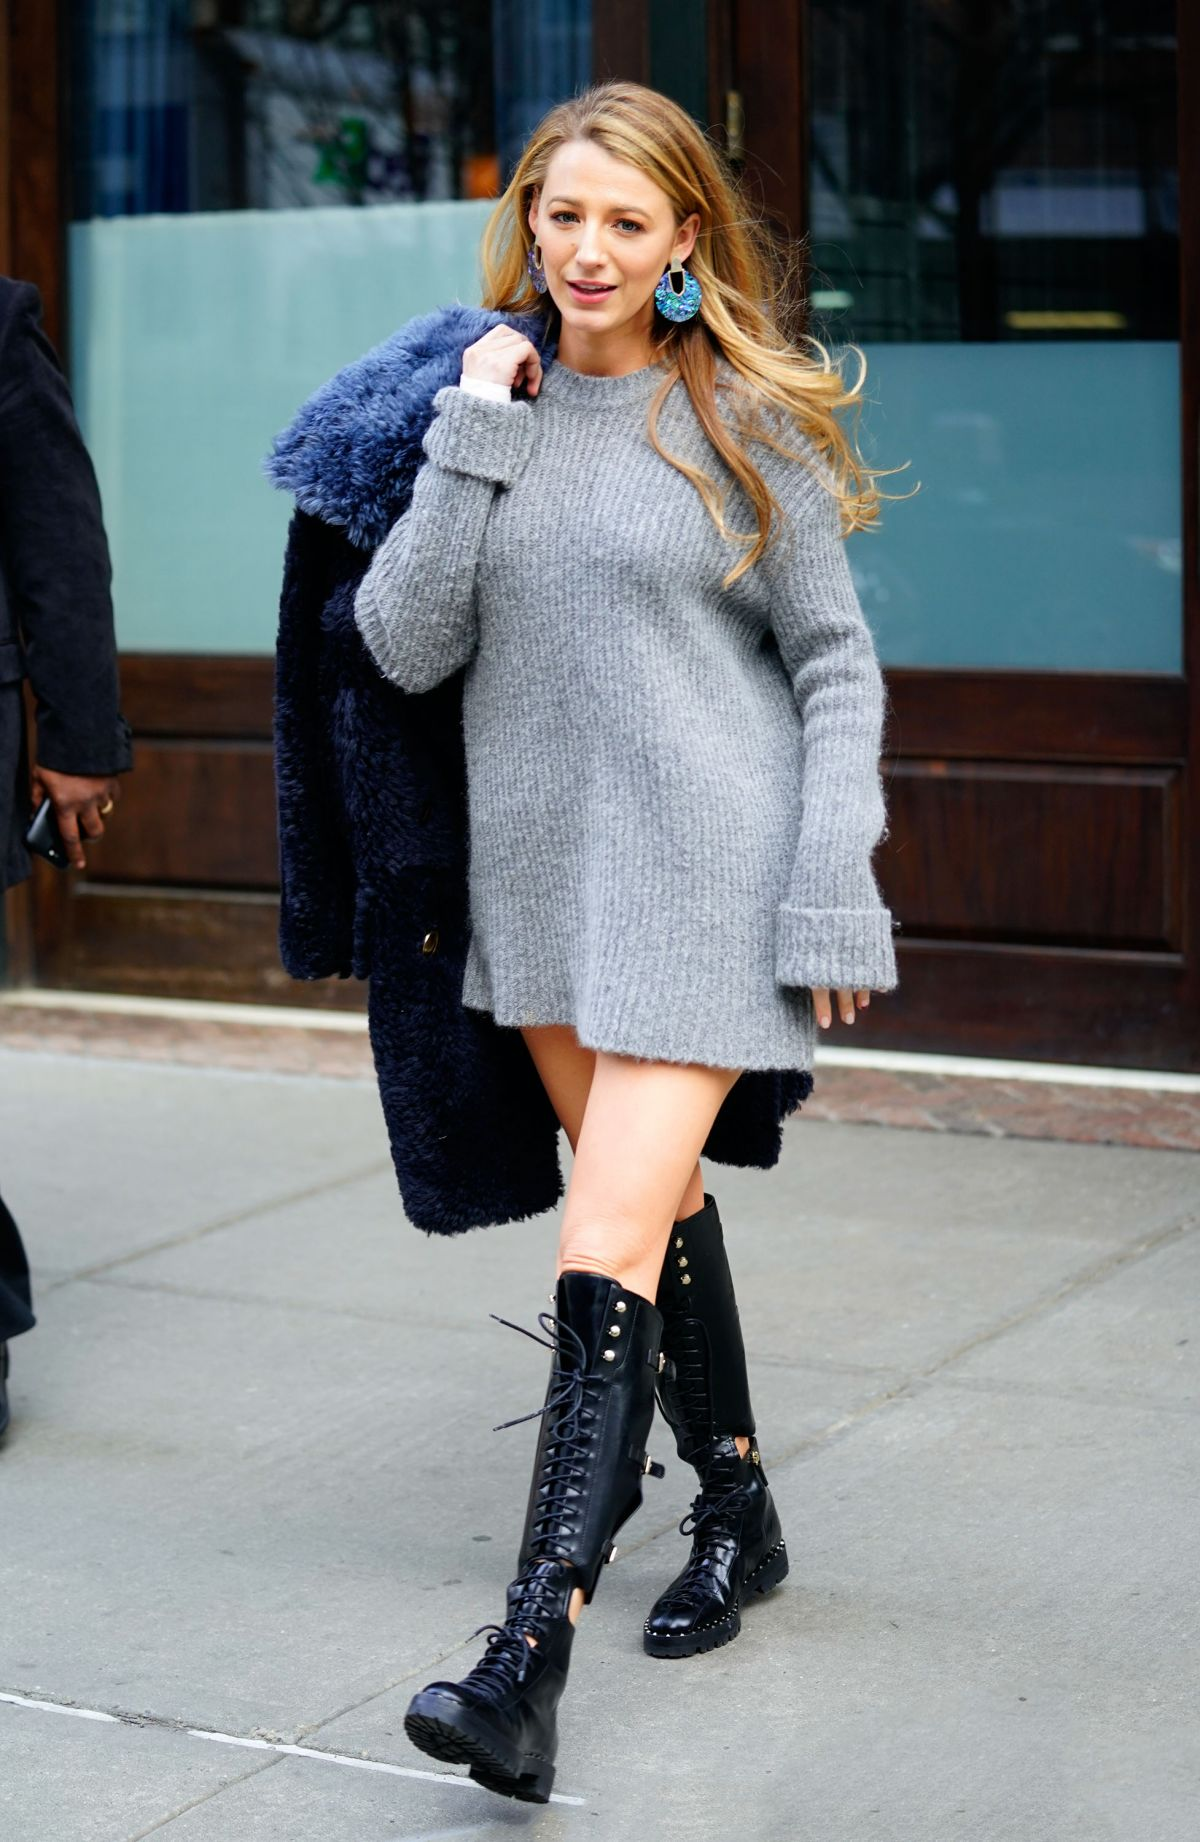 BLAKE LIVELY Out in New York 02/15/2018 – HawtCelebs